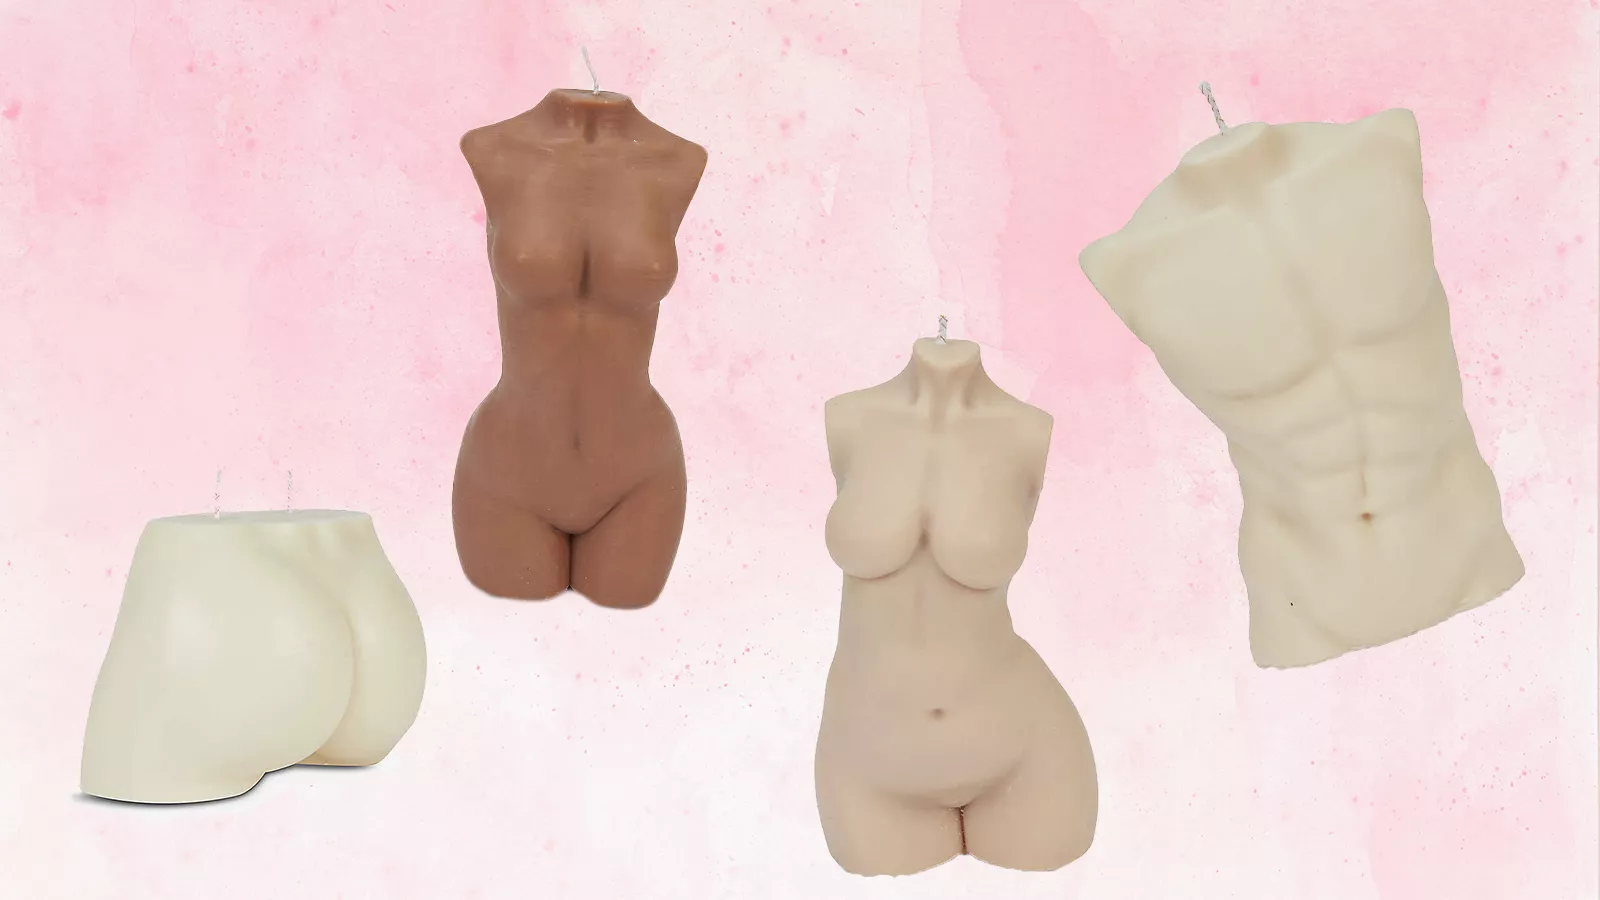 Body candles are the next homeware must-have we can't get enough of